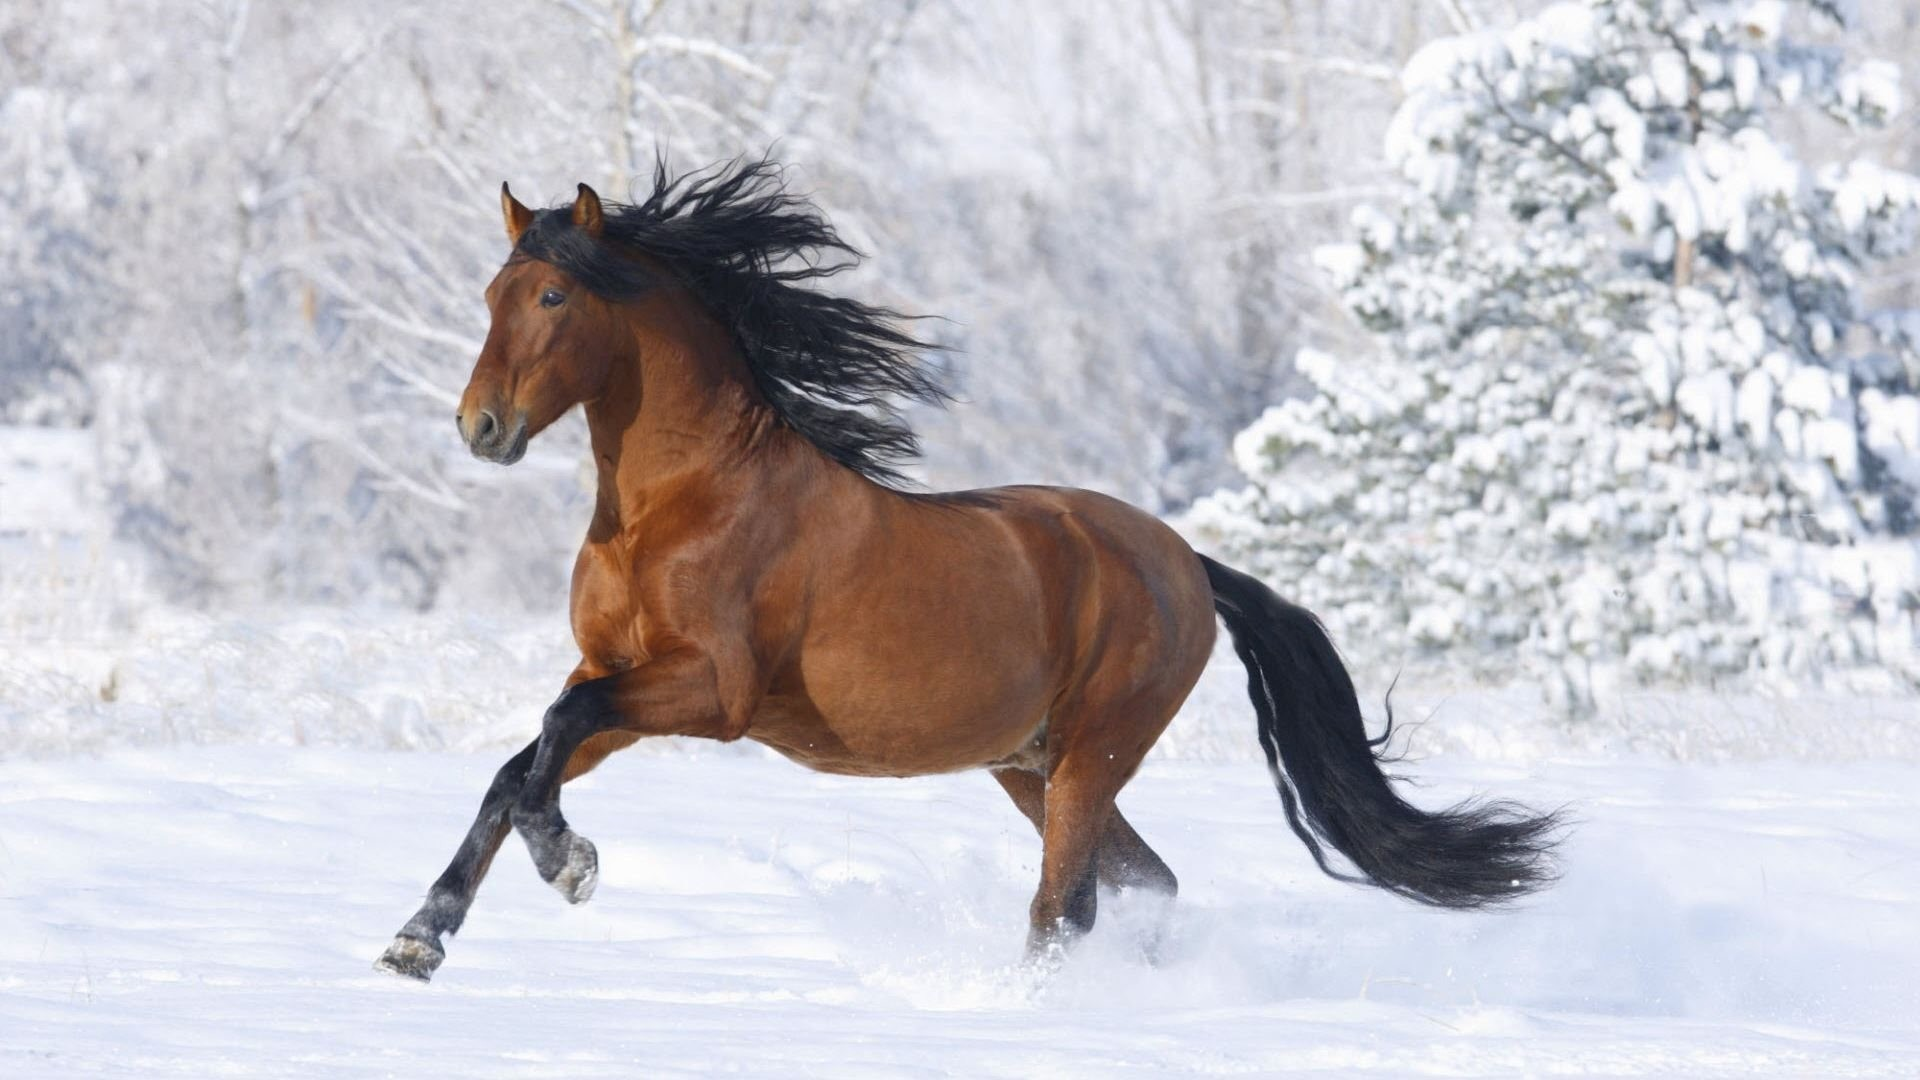 1920x1080 Cool Arabian Horse Images & Wallpapers Humphrey Cotte